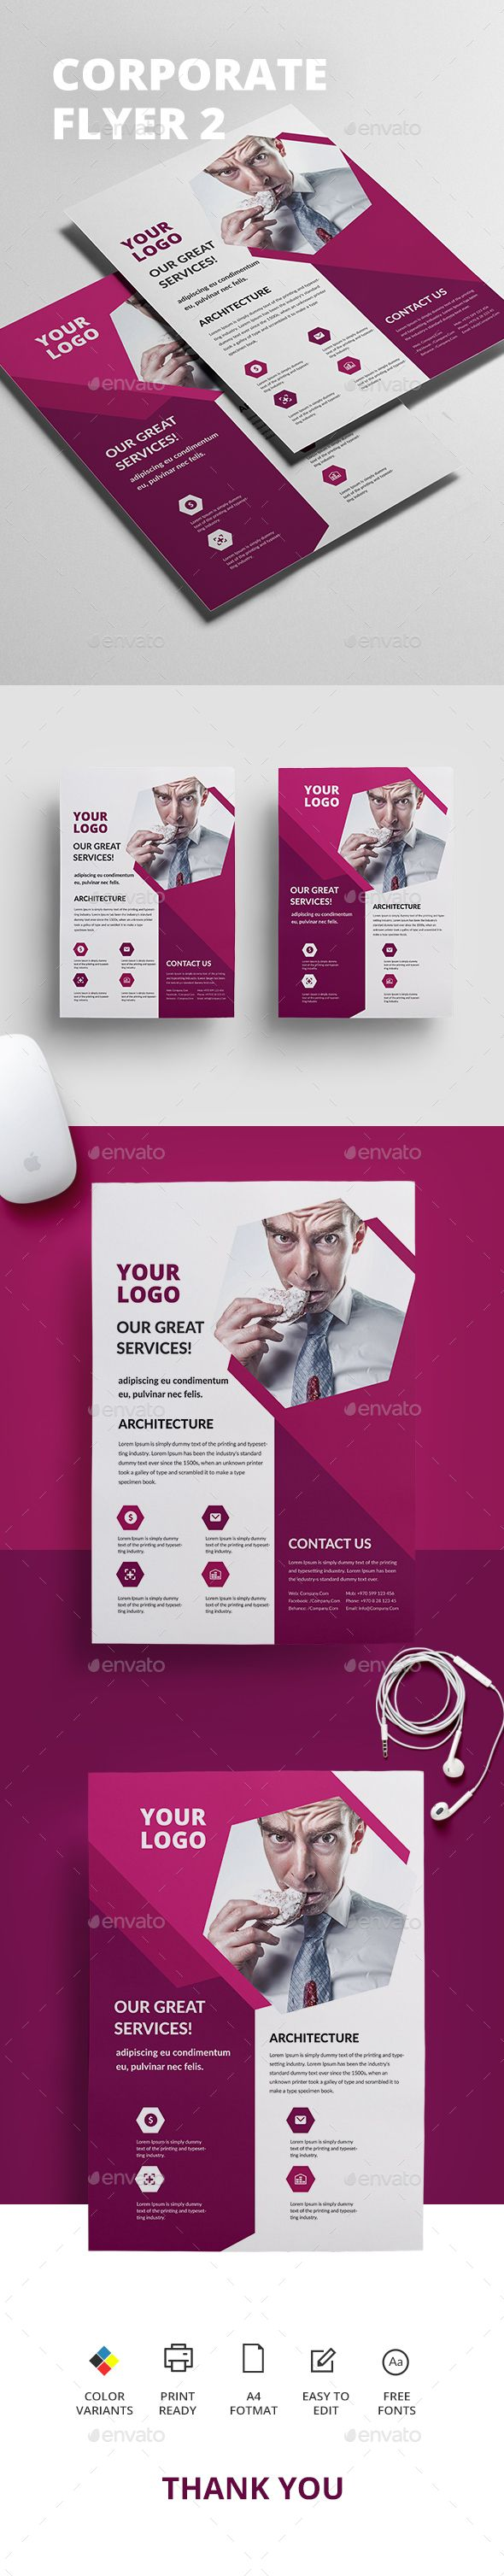 The 25 best flyer printing ideas on pinterest flyer printing corporate flyer 2 fandeluxe Gallery